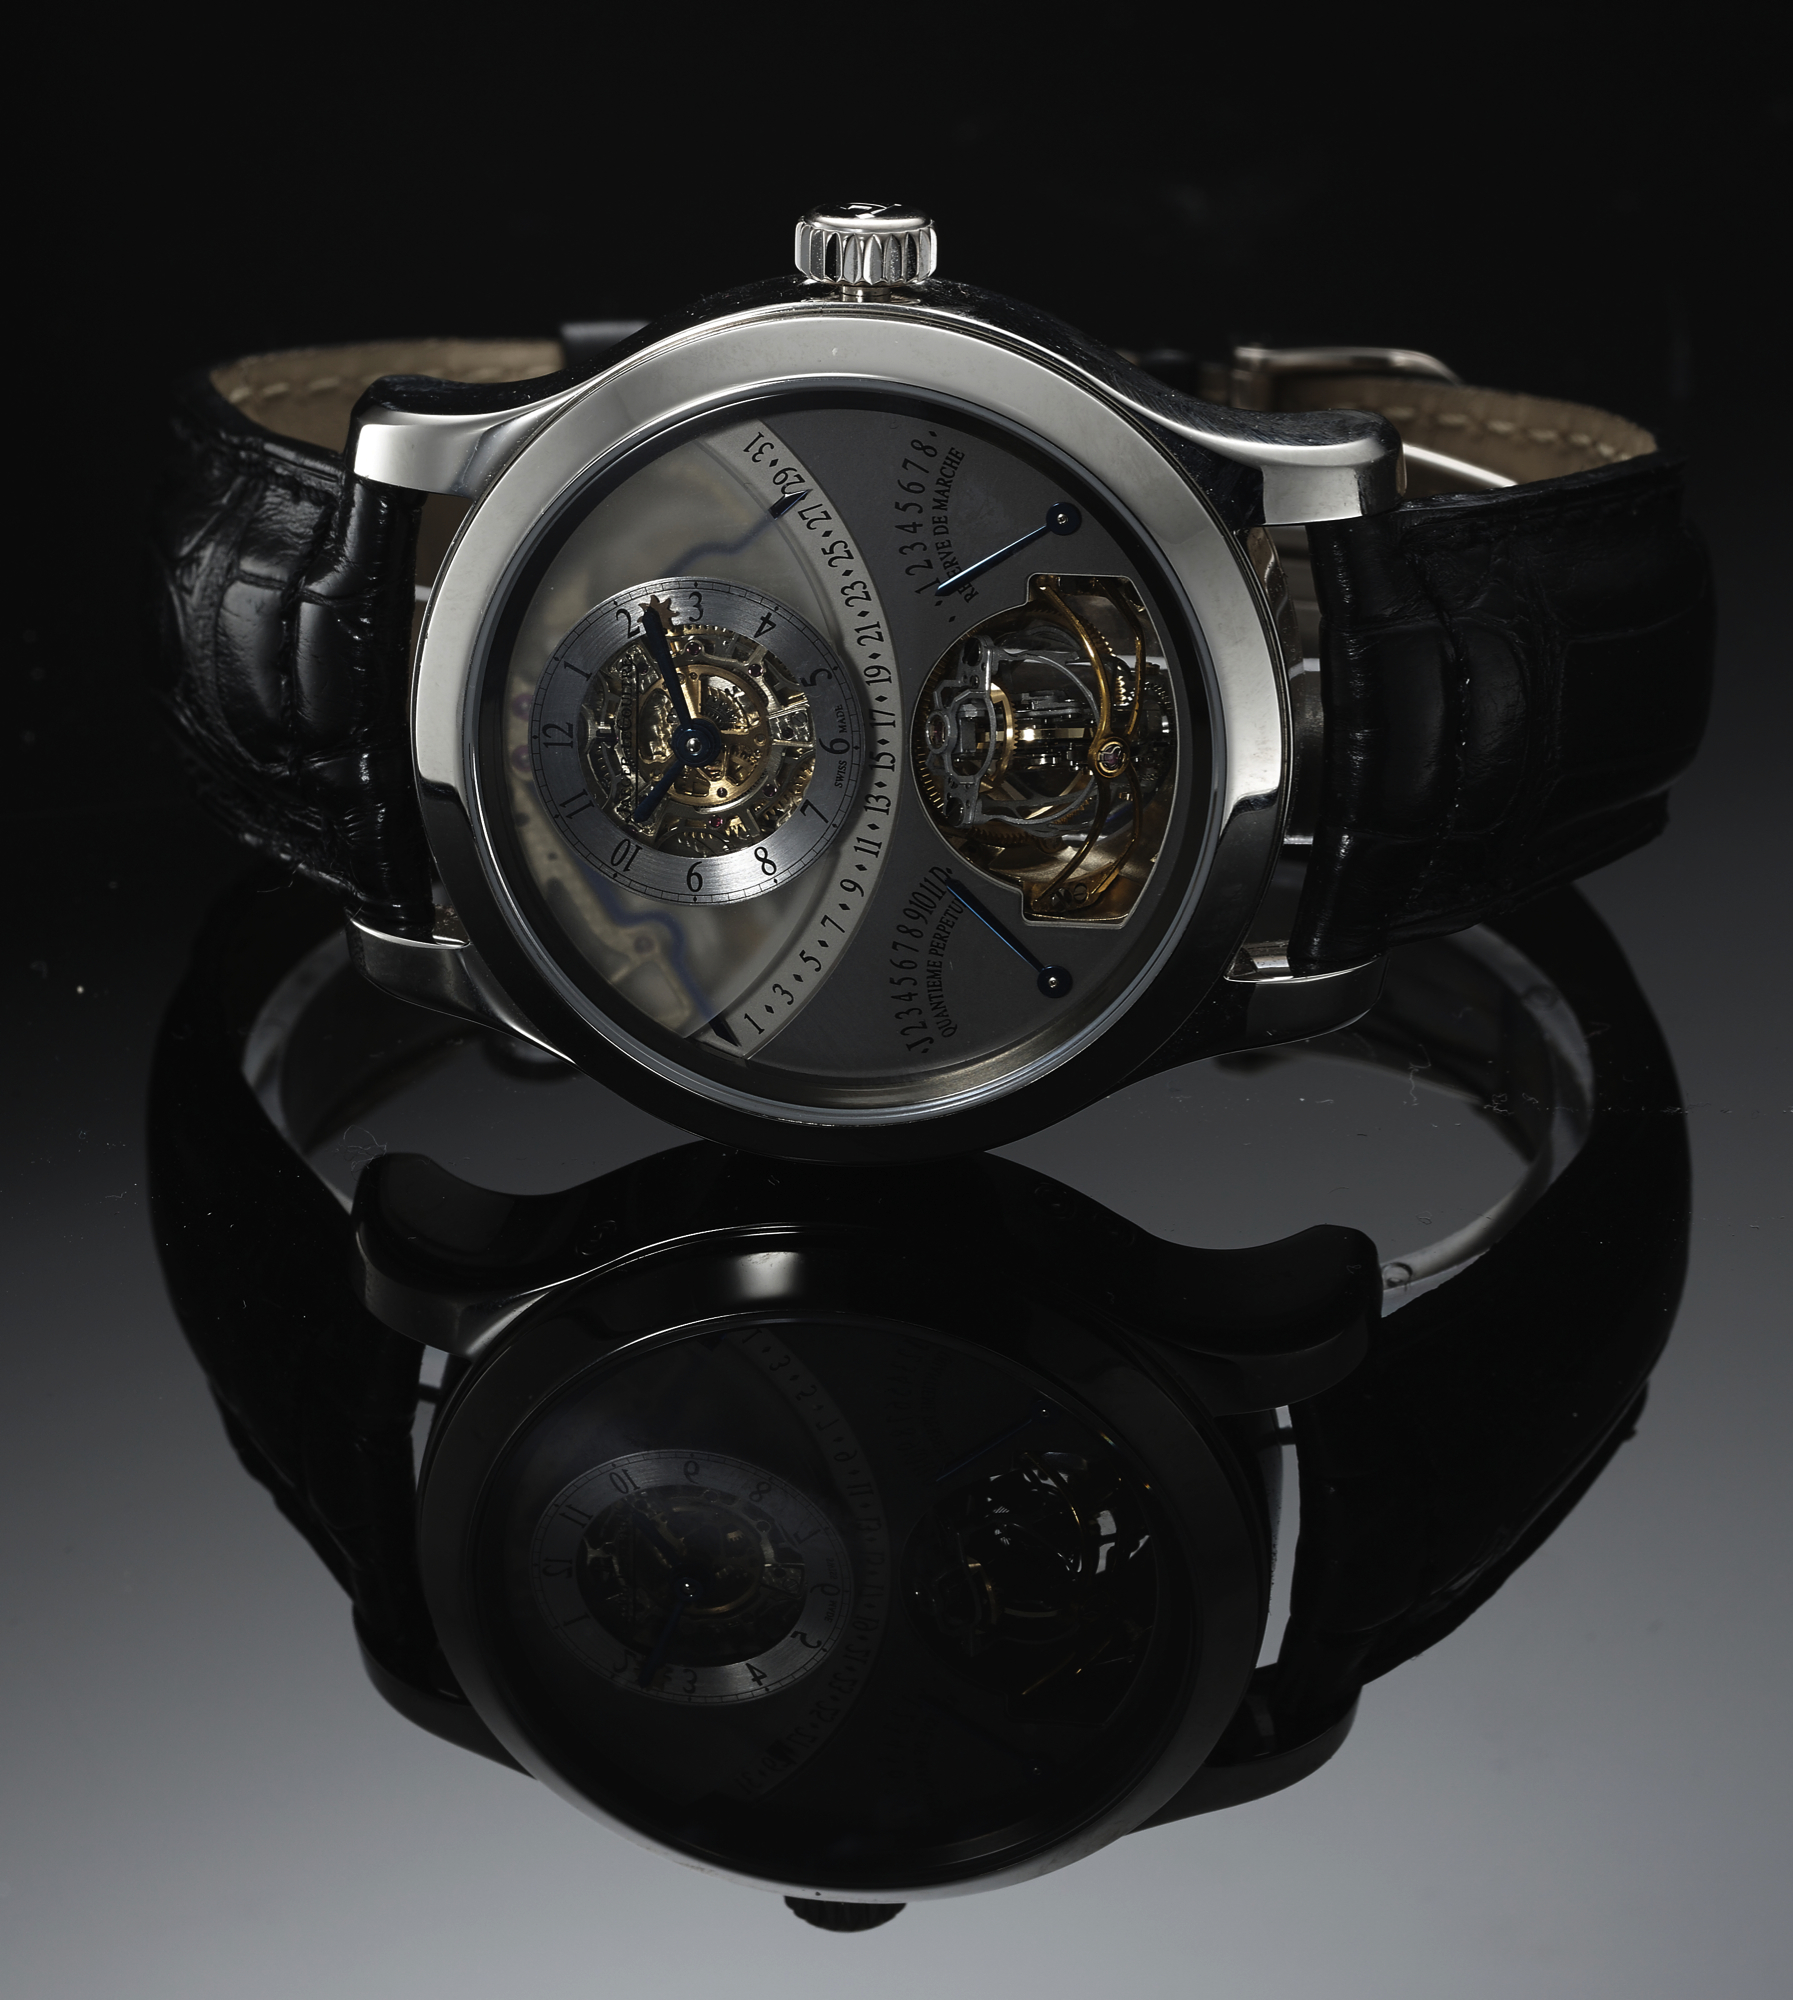 Rare Patek Philippe and Jaeger-LeCoultre Watches Fetch $29,000,000 at Auction in Hong Kong